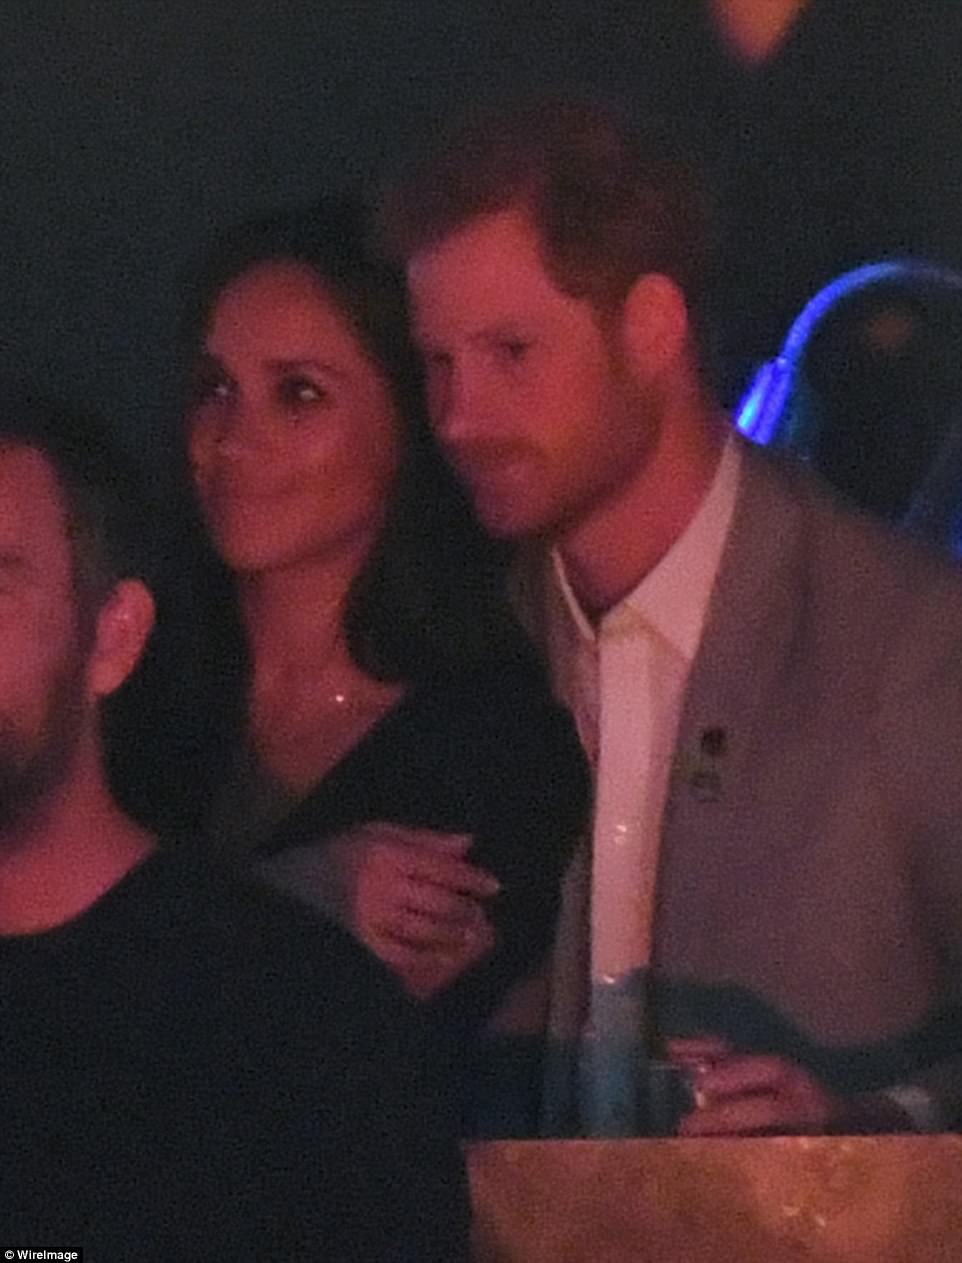 Prince Harry and gf Meghan Markle display some PDA at the closing of Invictus ceremony